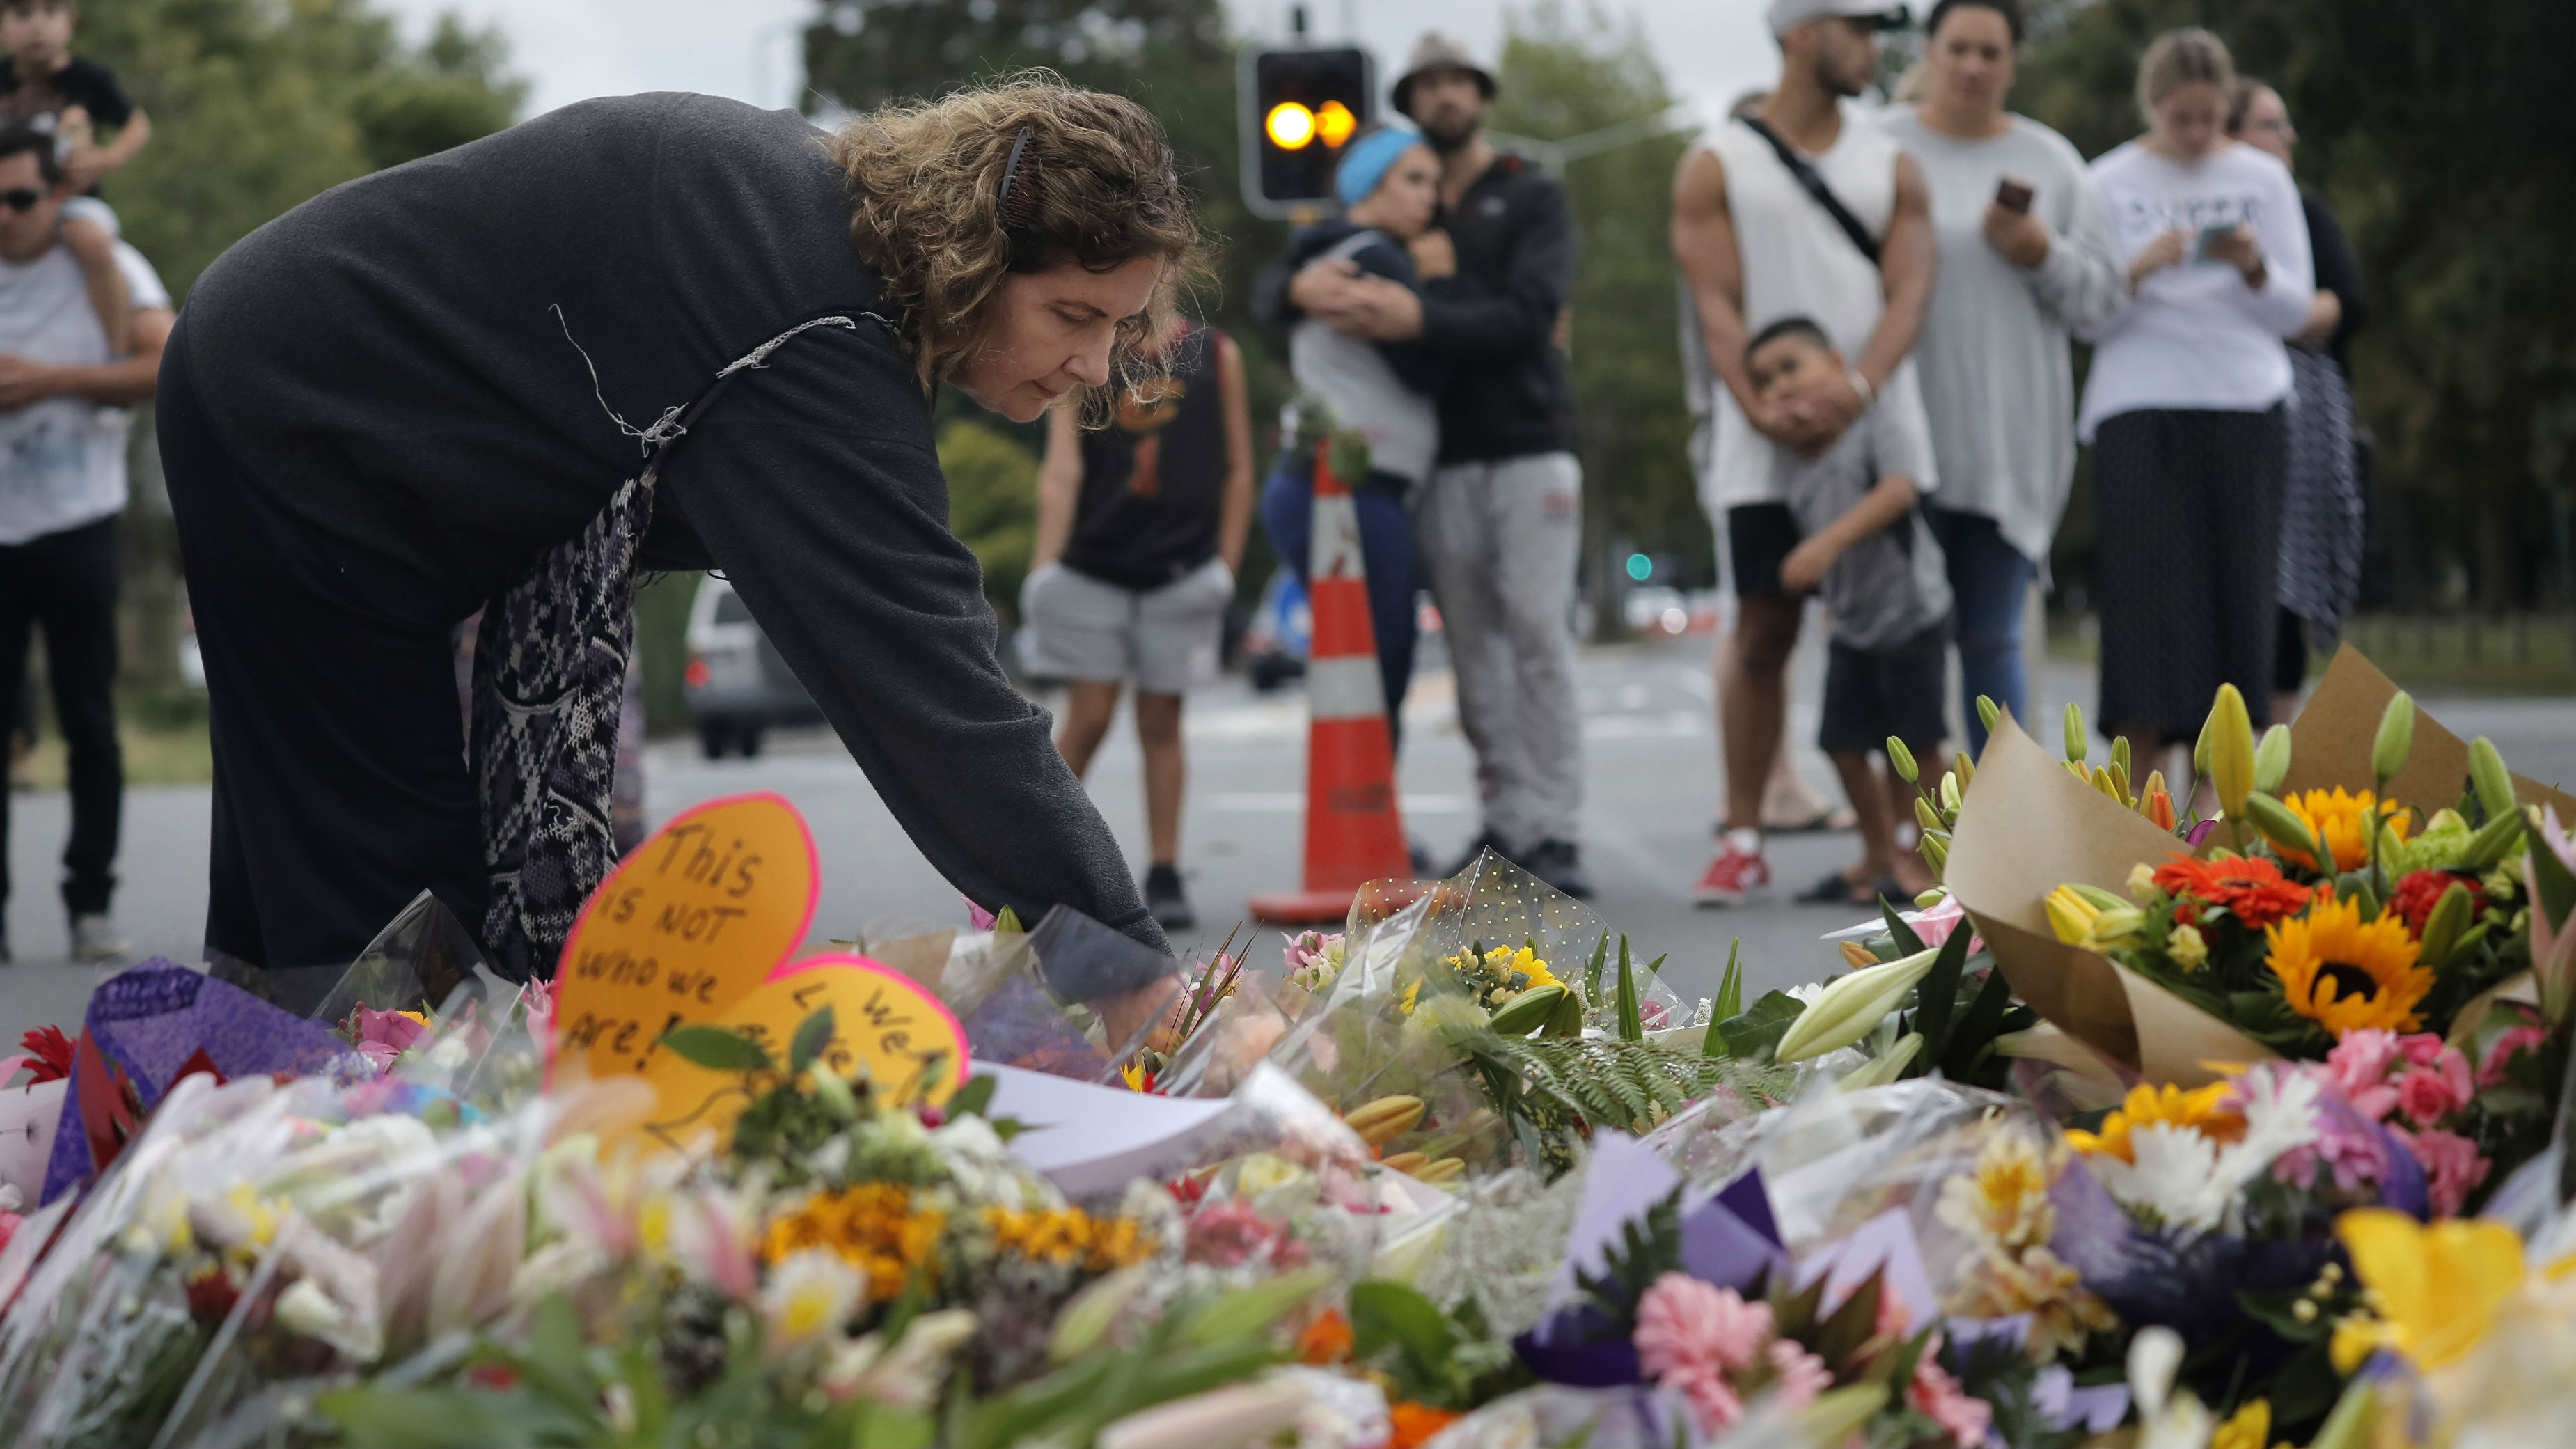 In New Zealand collected more than 1.5 million victims of the shooting